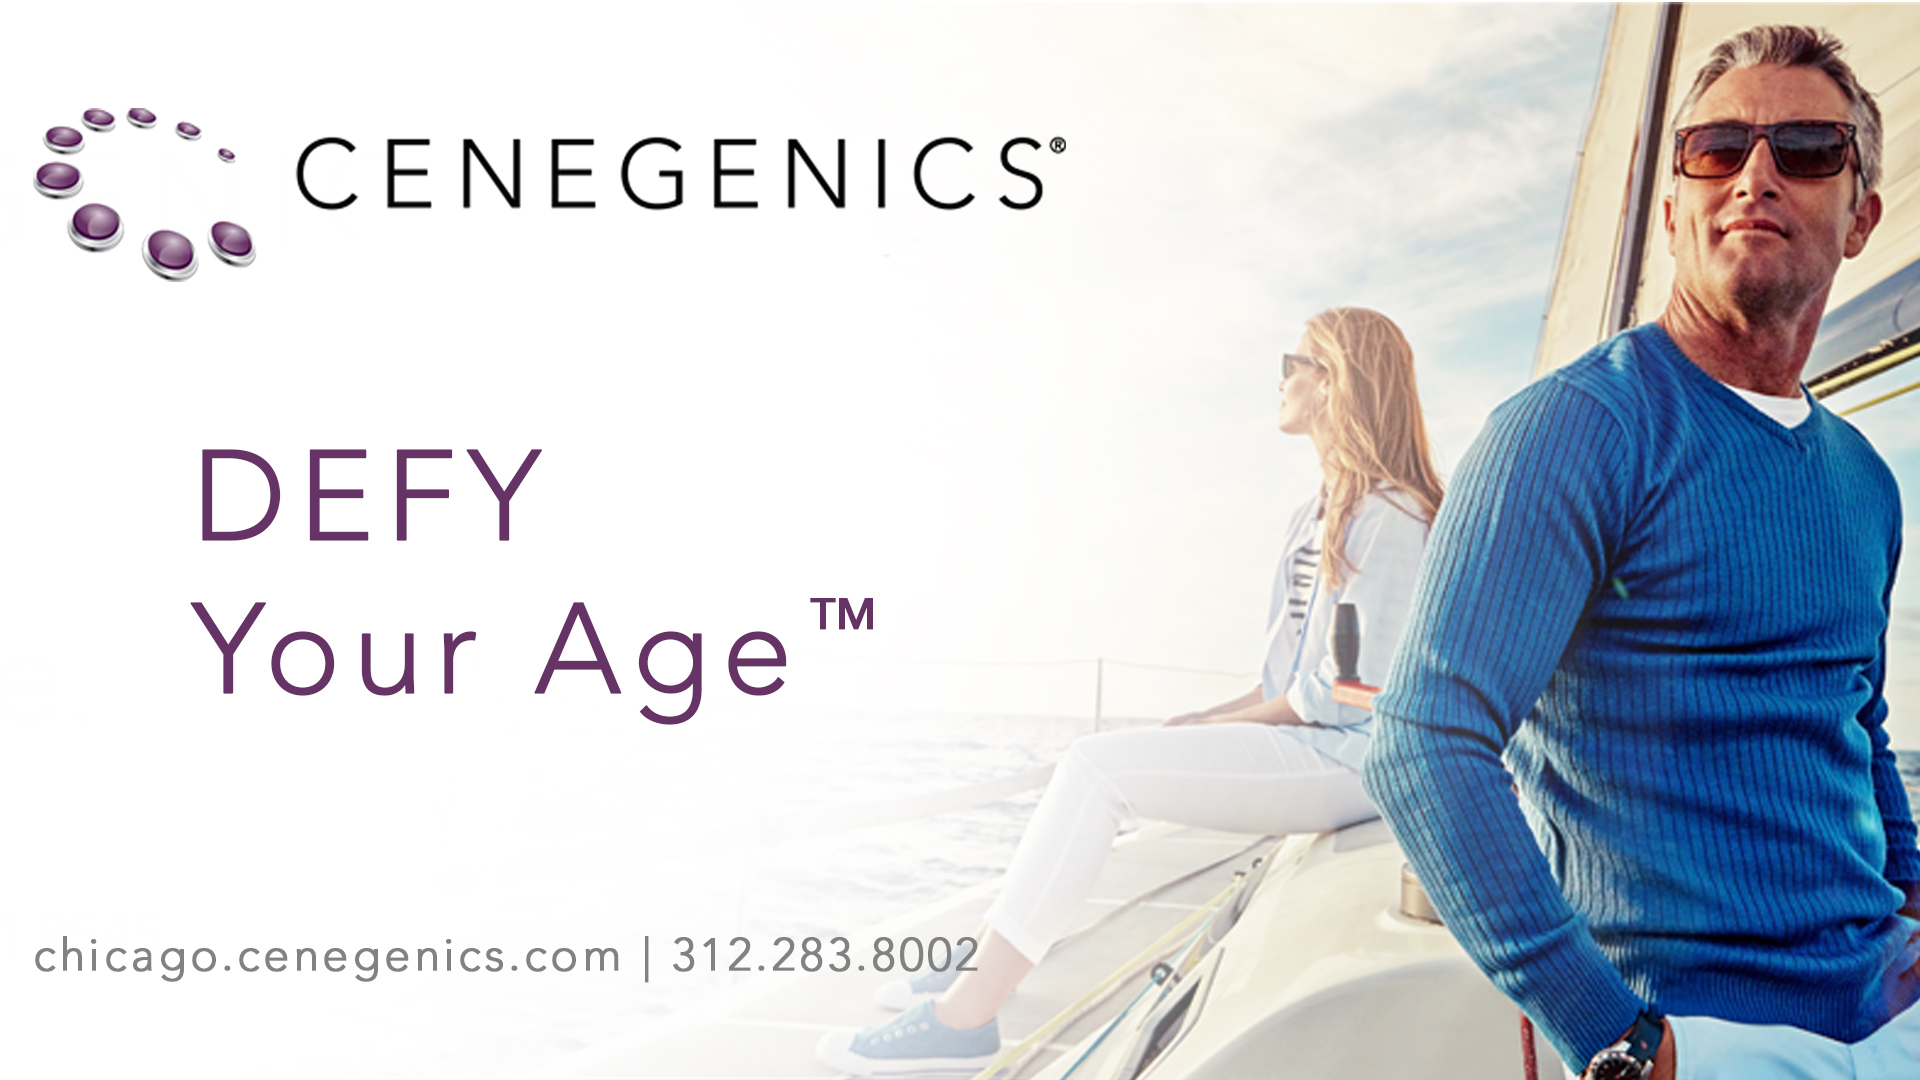 Cenegenics Chicago reviews | Medical Centers at 77 W Wacker Drive, Suite 4500 - Chicago IL